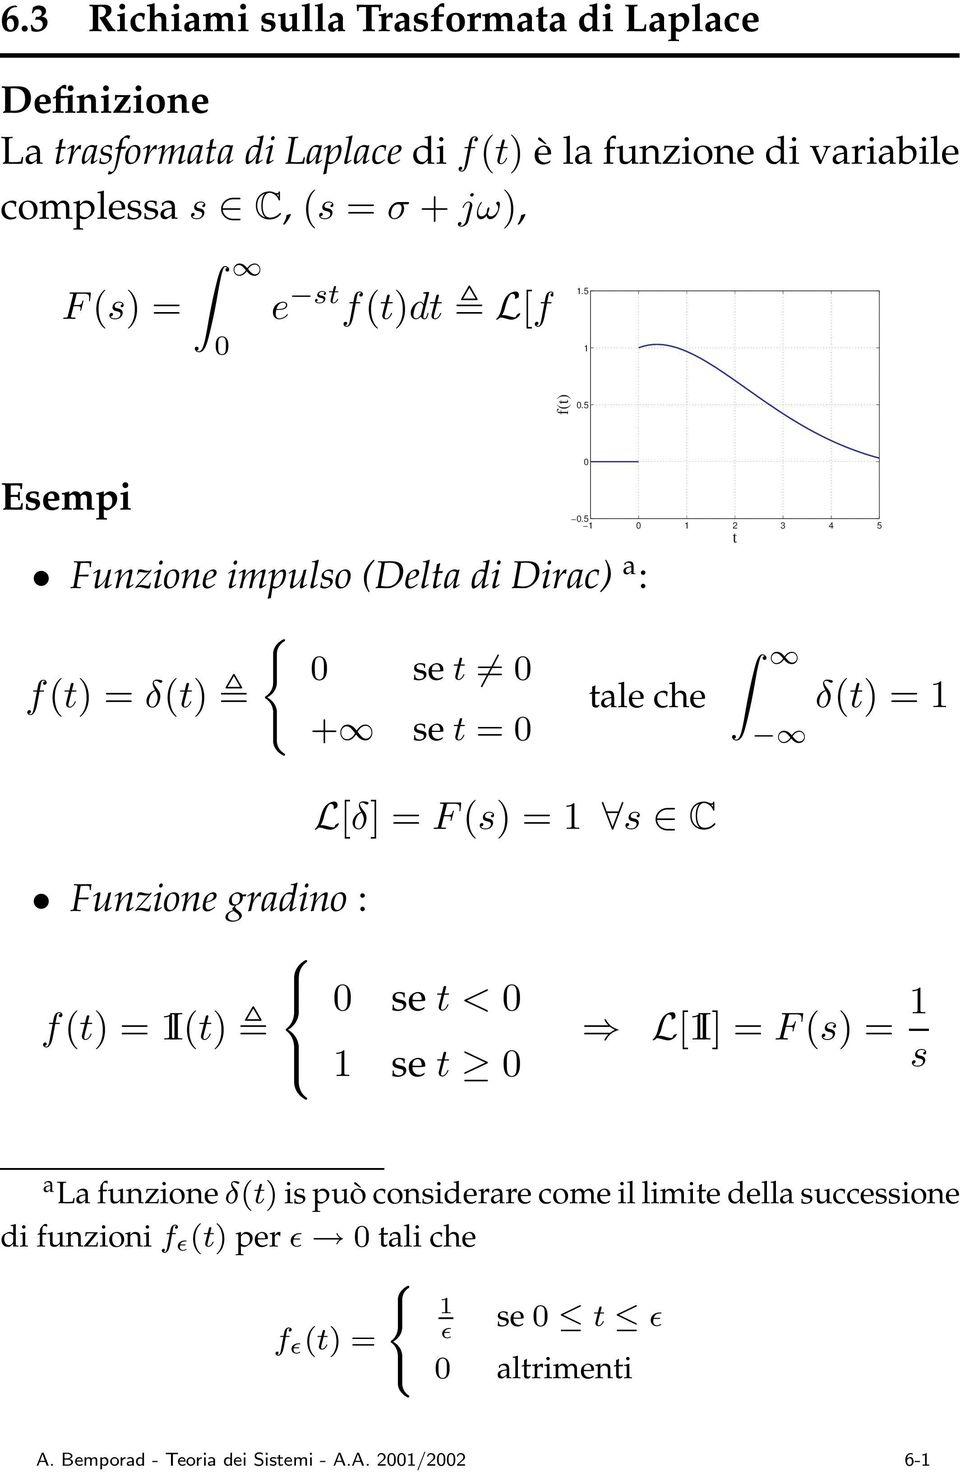 5 2 3 4 5 tale che t δ(t) = L[δ] =F (s) = s C Funzione gradino : se t< f(t) =I(t) se t L[I] = F (s) = s a La funzione δ(t) is può